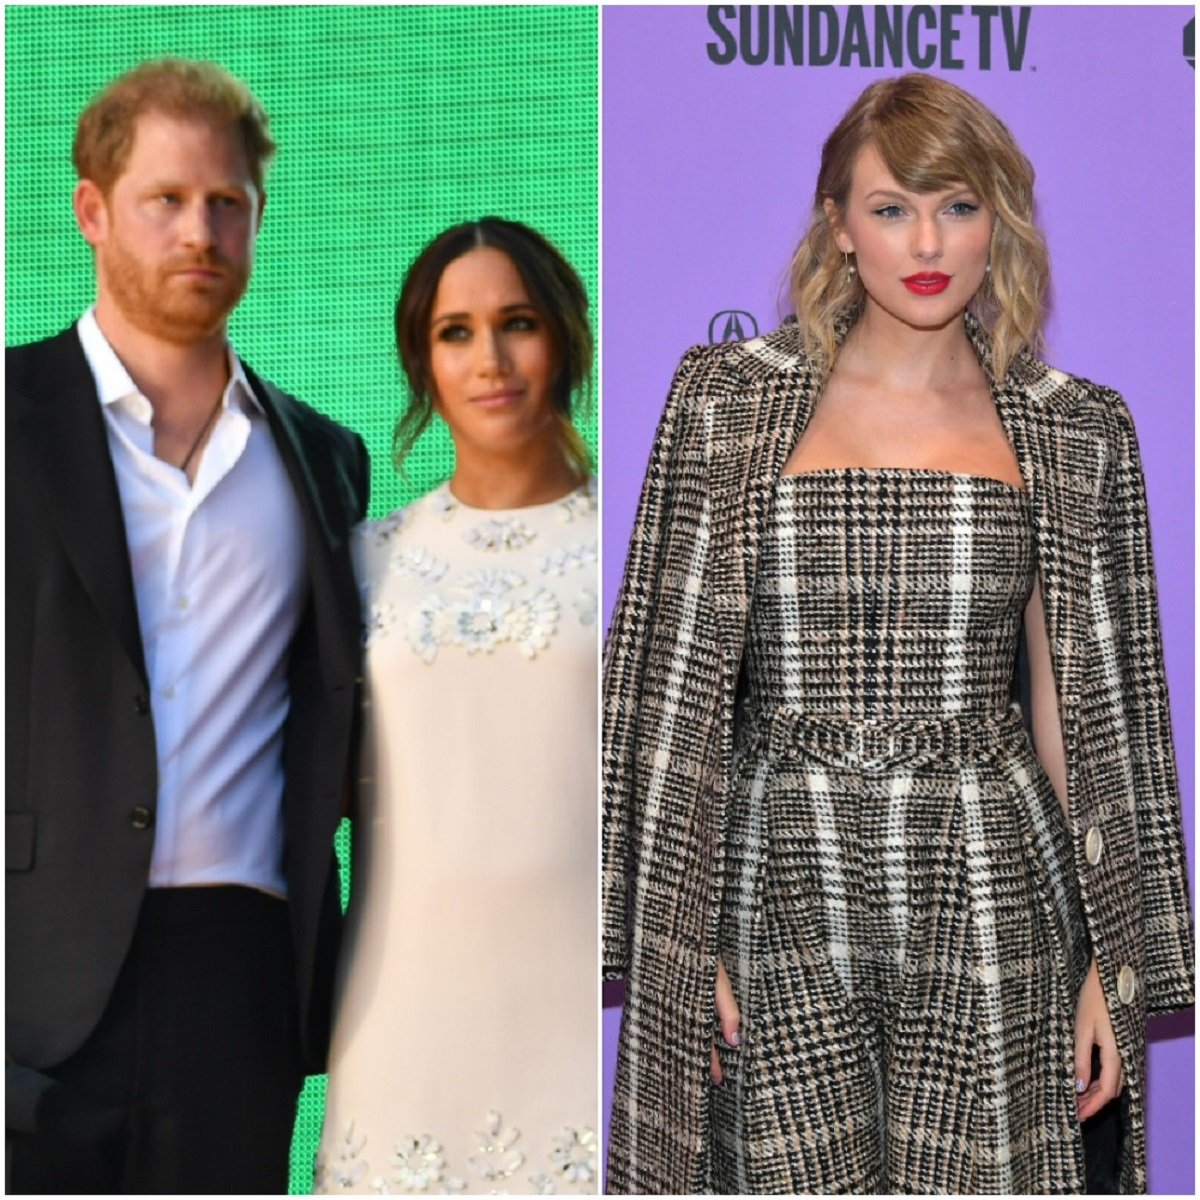 (L) Prince Harry and Meghan Markle onstage at Global Citizen Live Event, (R) Taylor Swift poses on red carpet at Sundance Film Festival